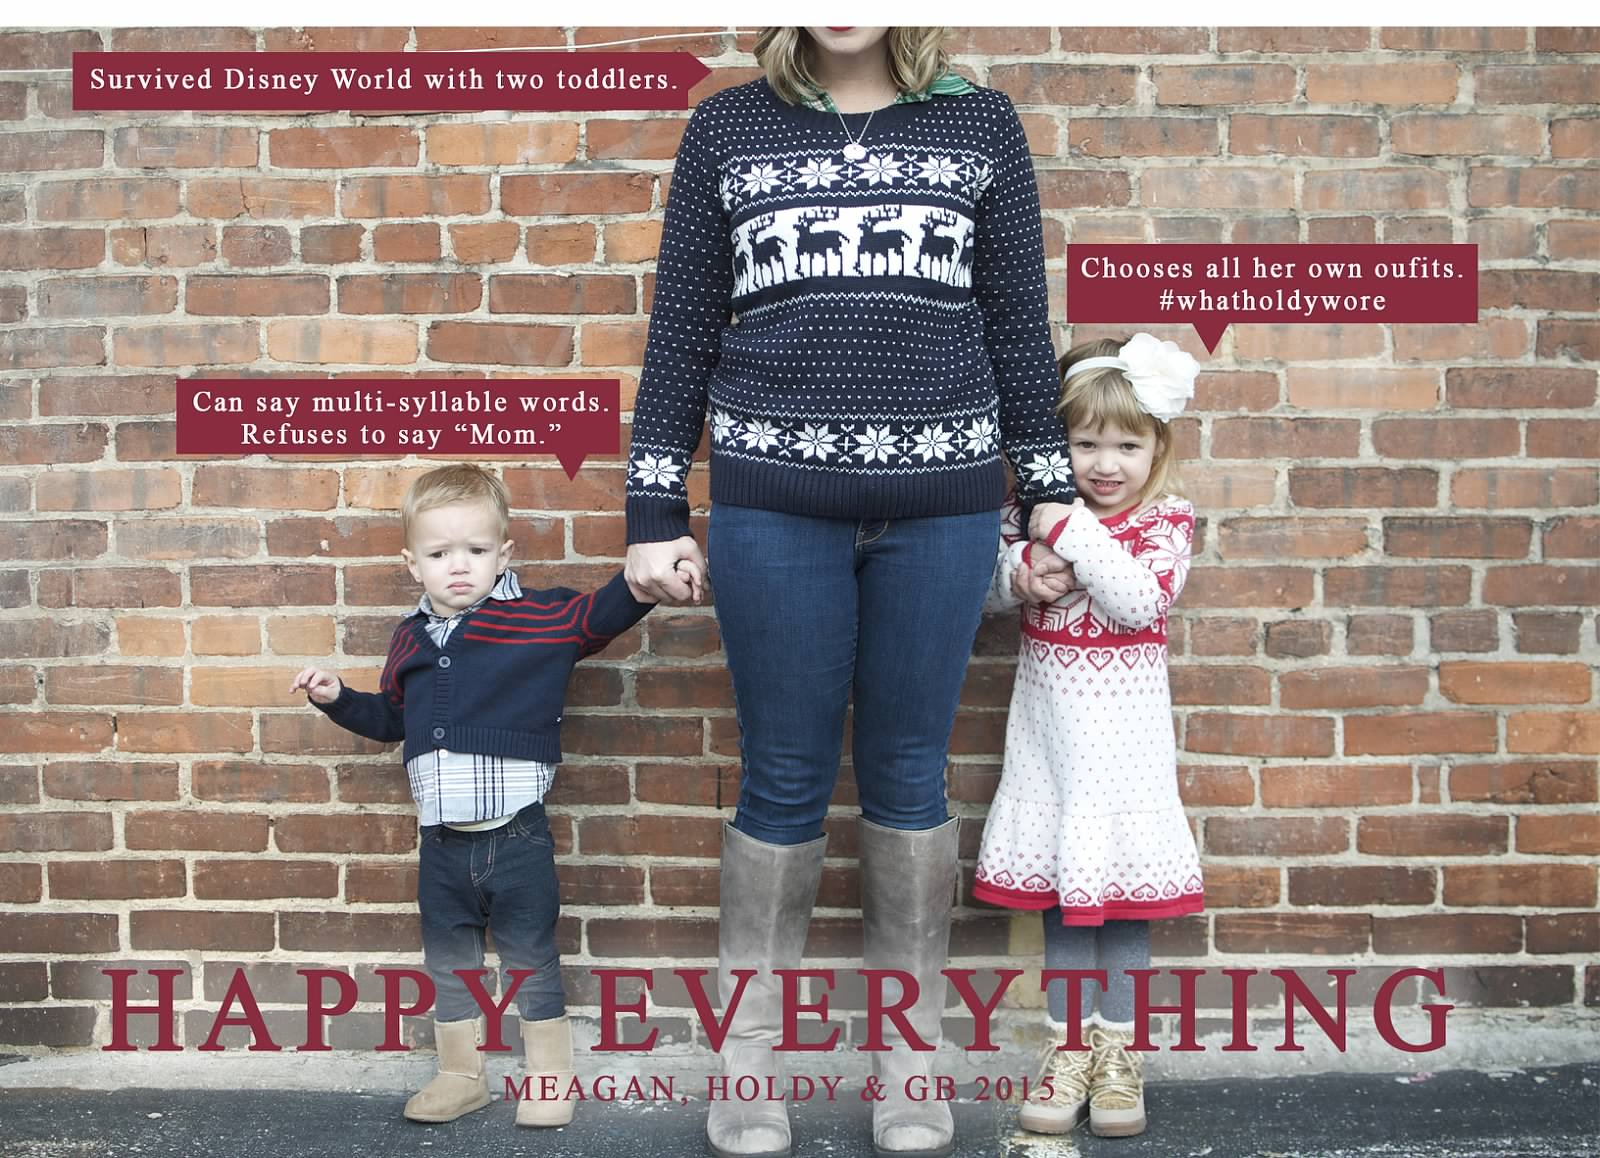 Christmas Card Photos 2015 @ohbotherblog